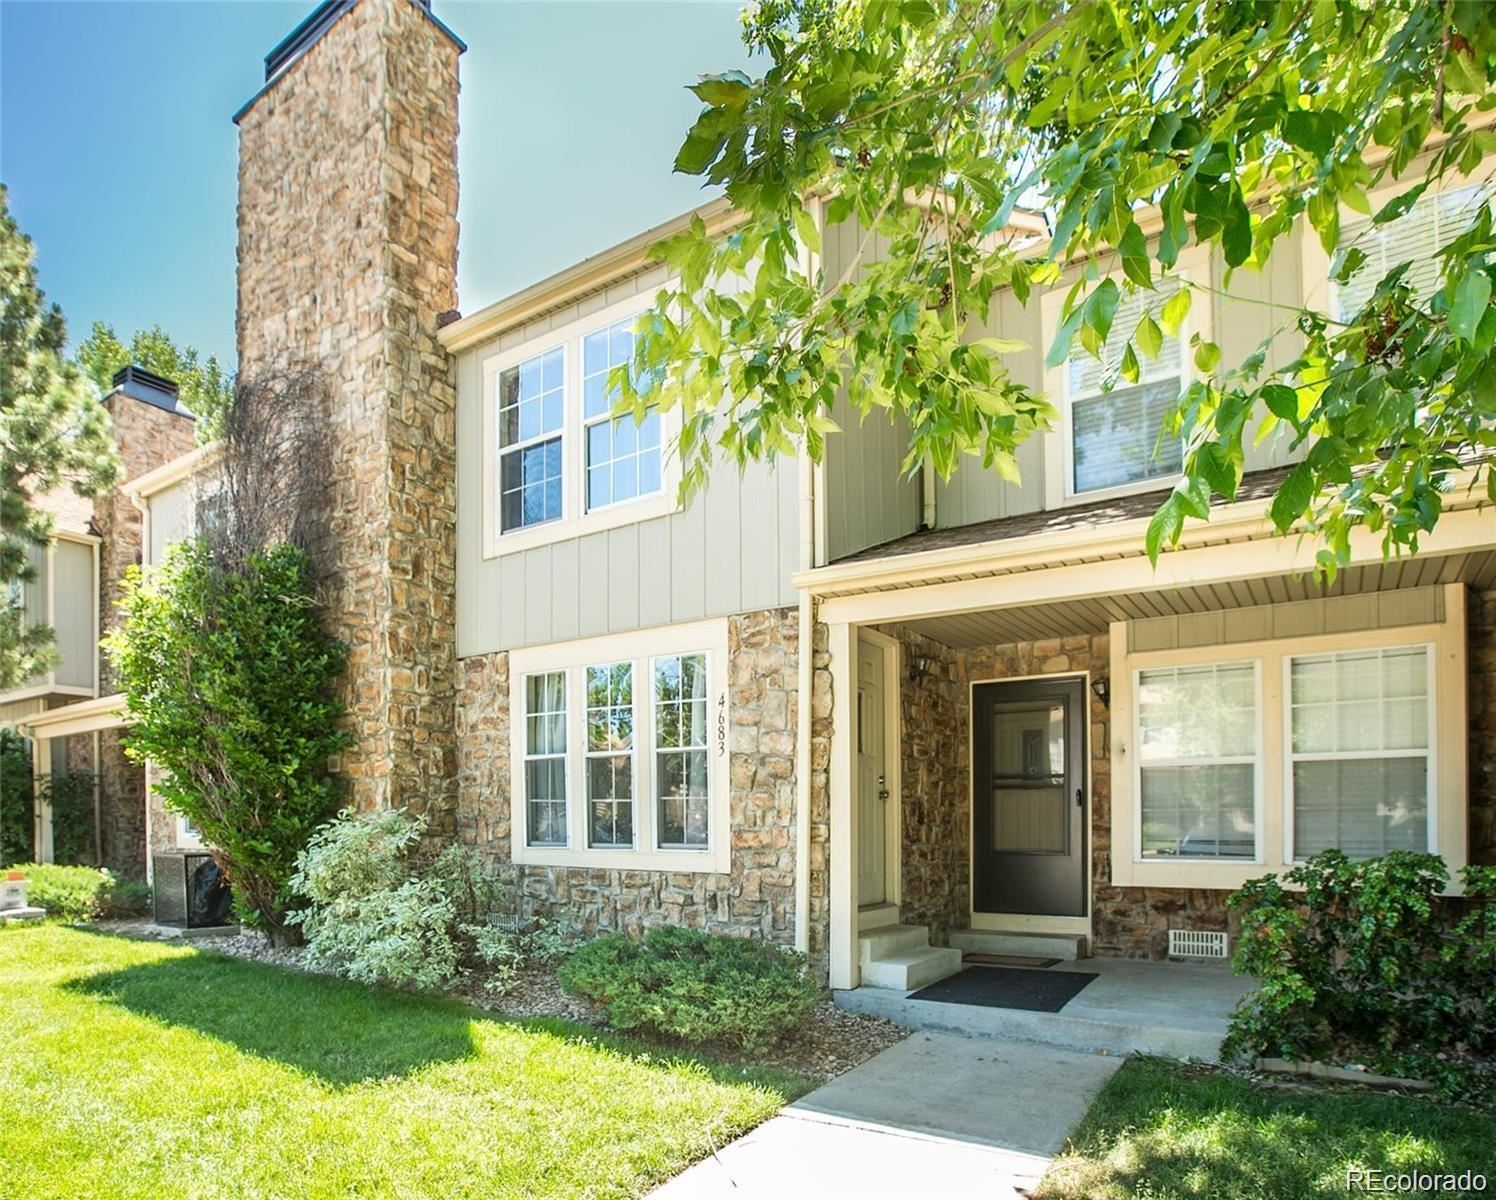 4683 S Crystal Way #C, Aurora, CO 80015 - #: 2616582